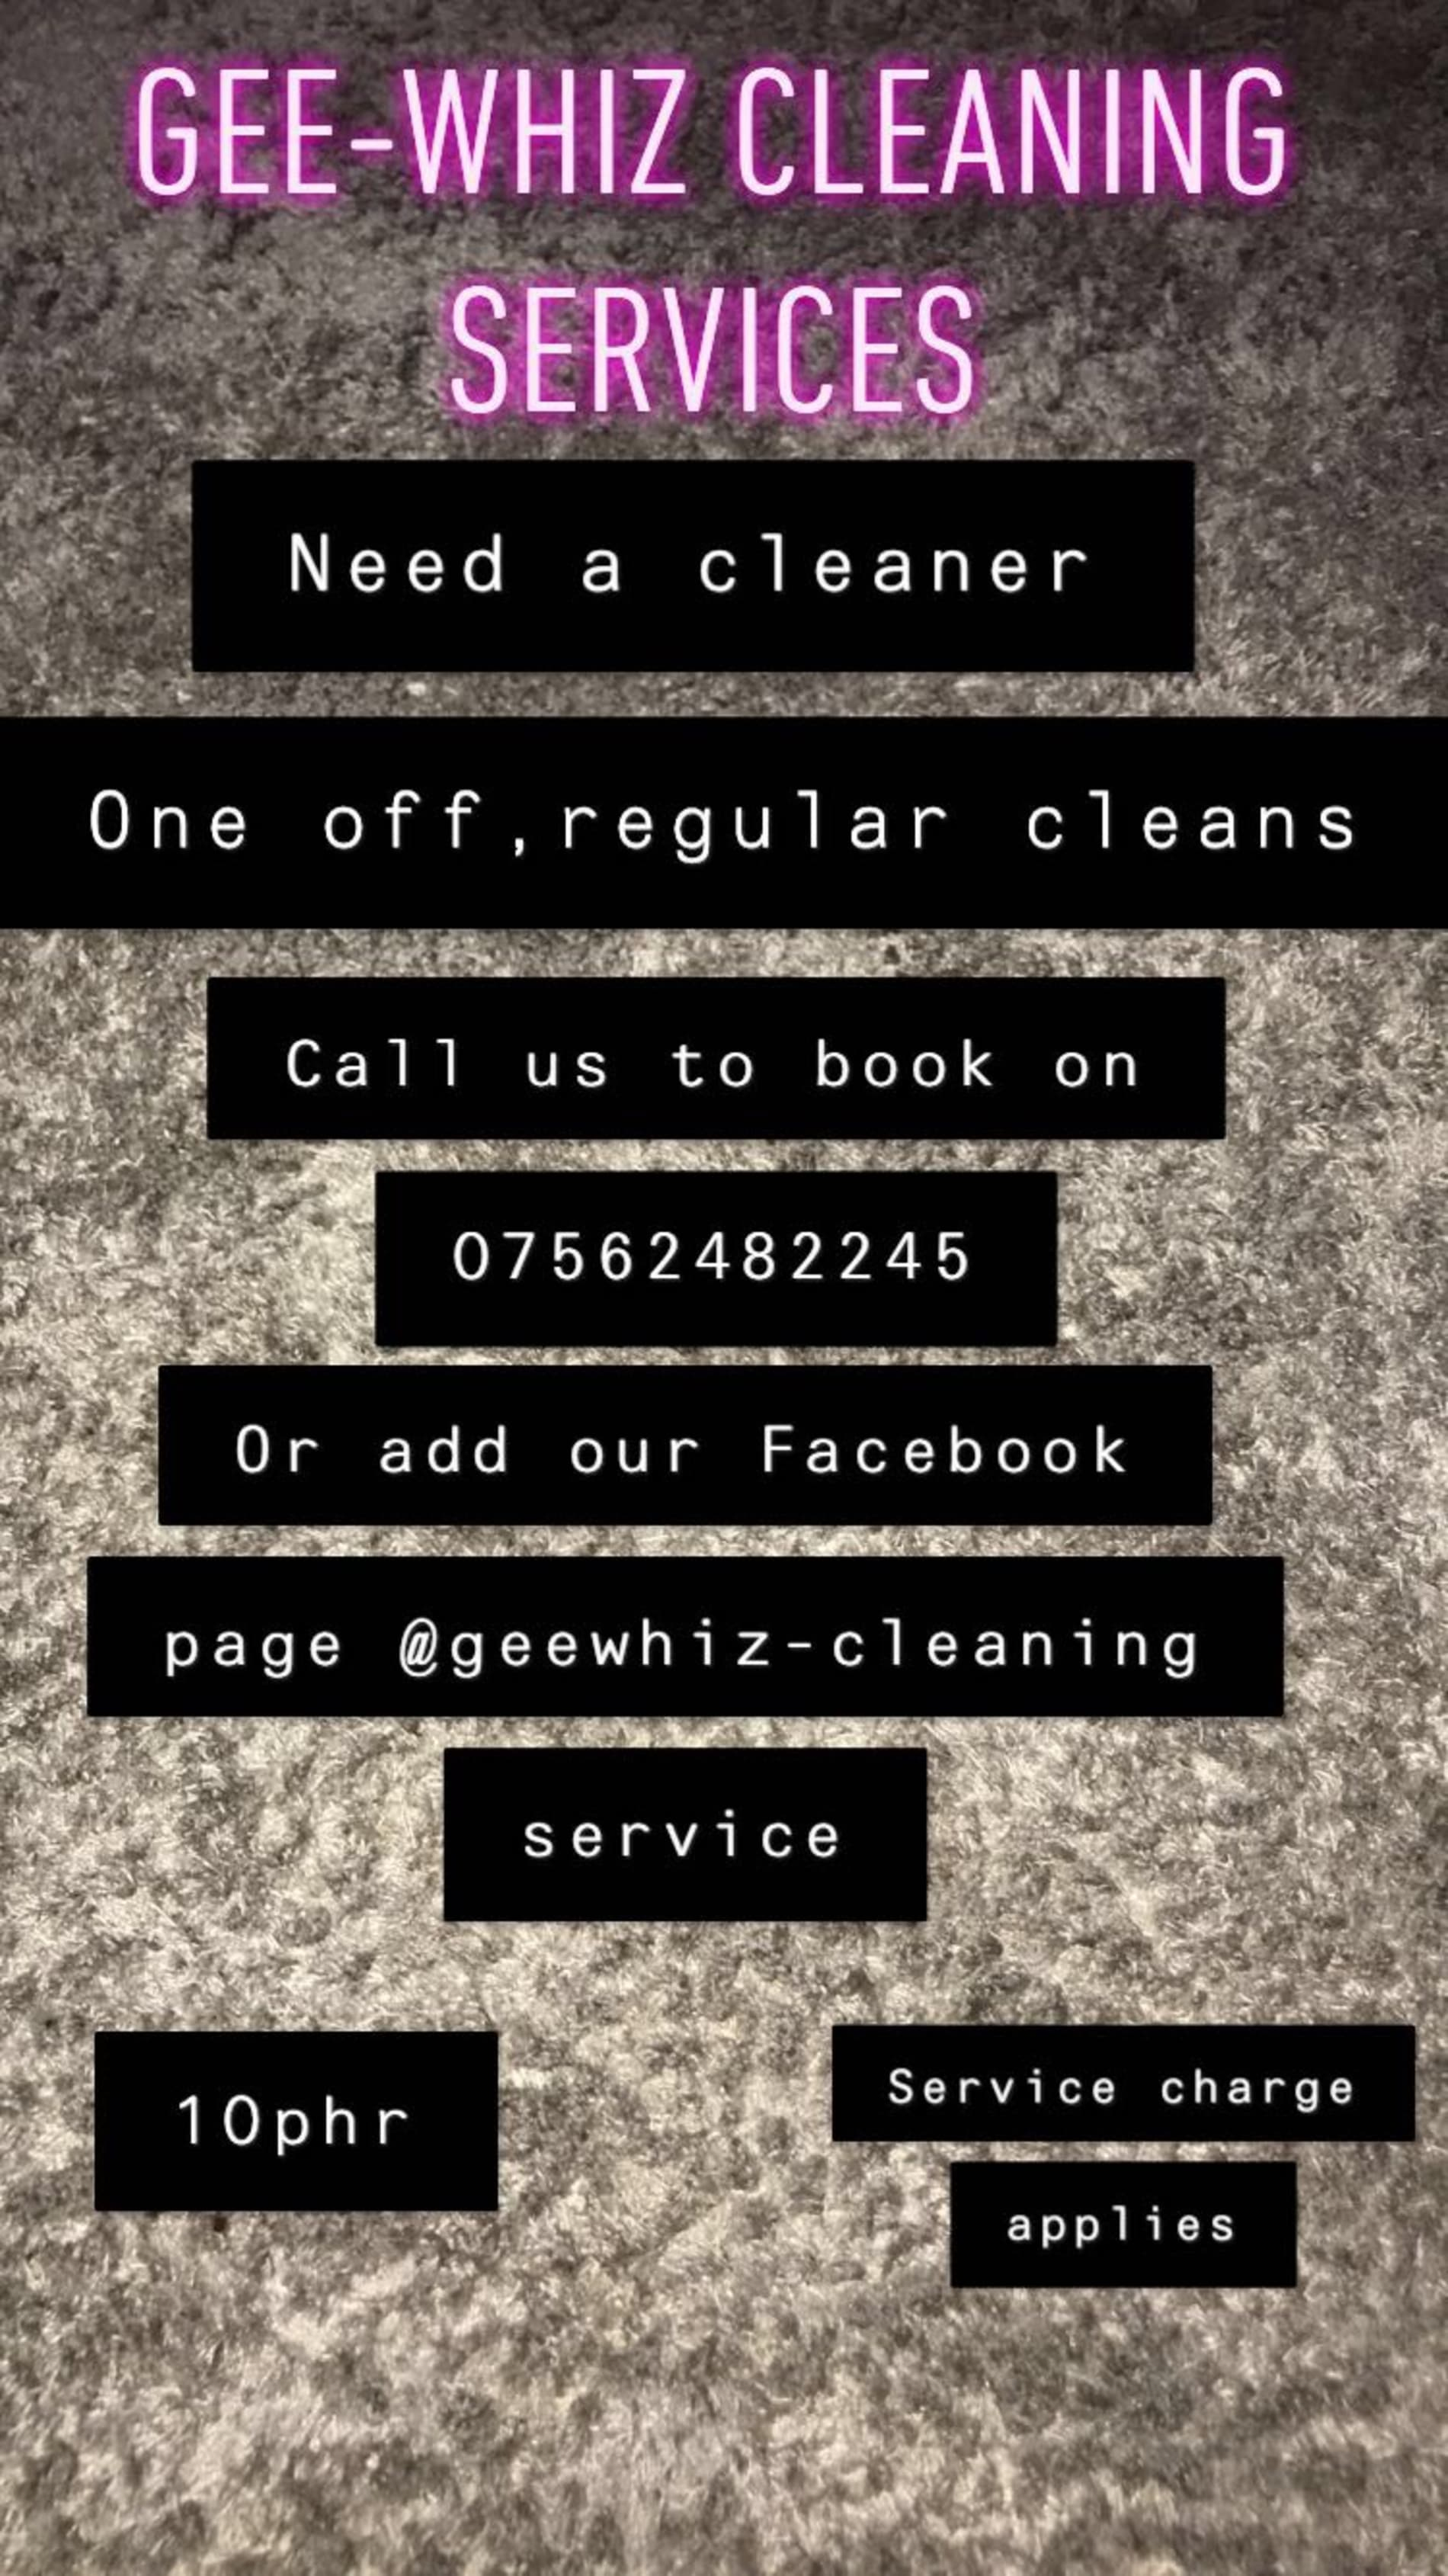 Gee-Whiz Cleaning Services